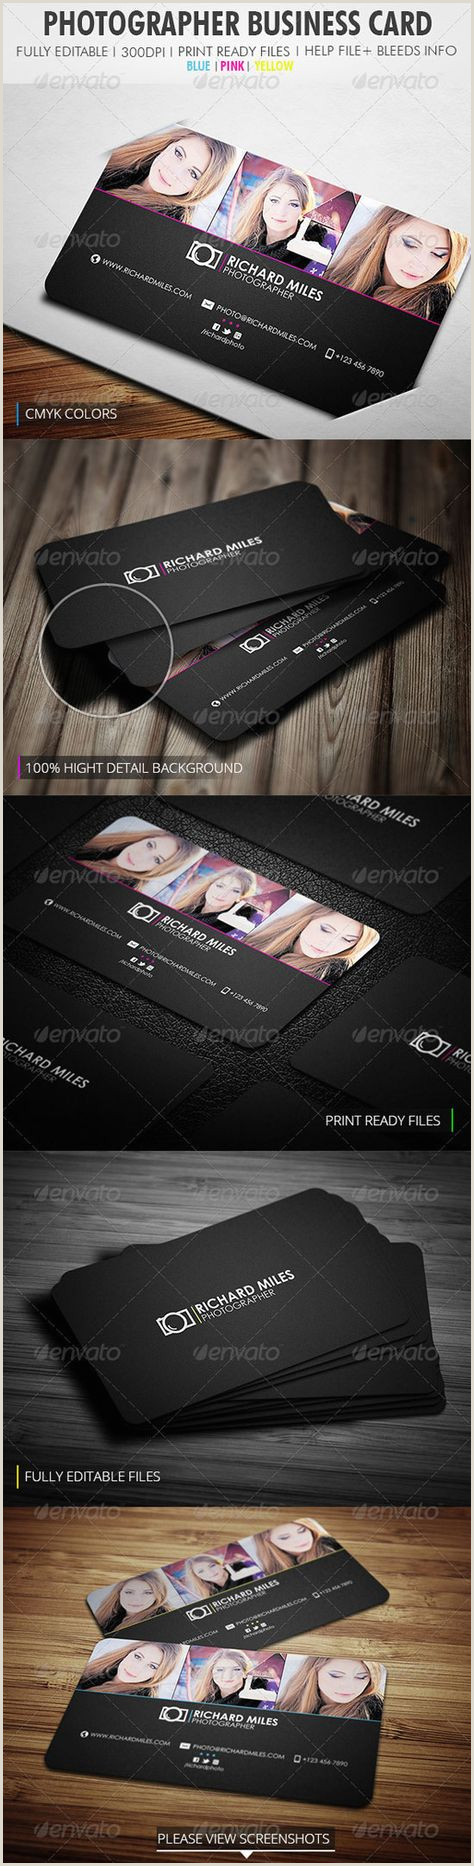 Creative Real Estate Business Cards 22 New Ideas Photography Business Cards Ideas Products